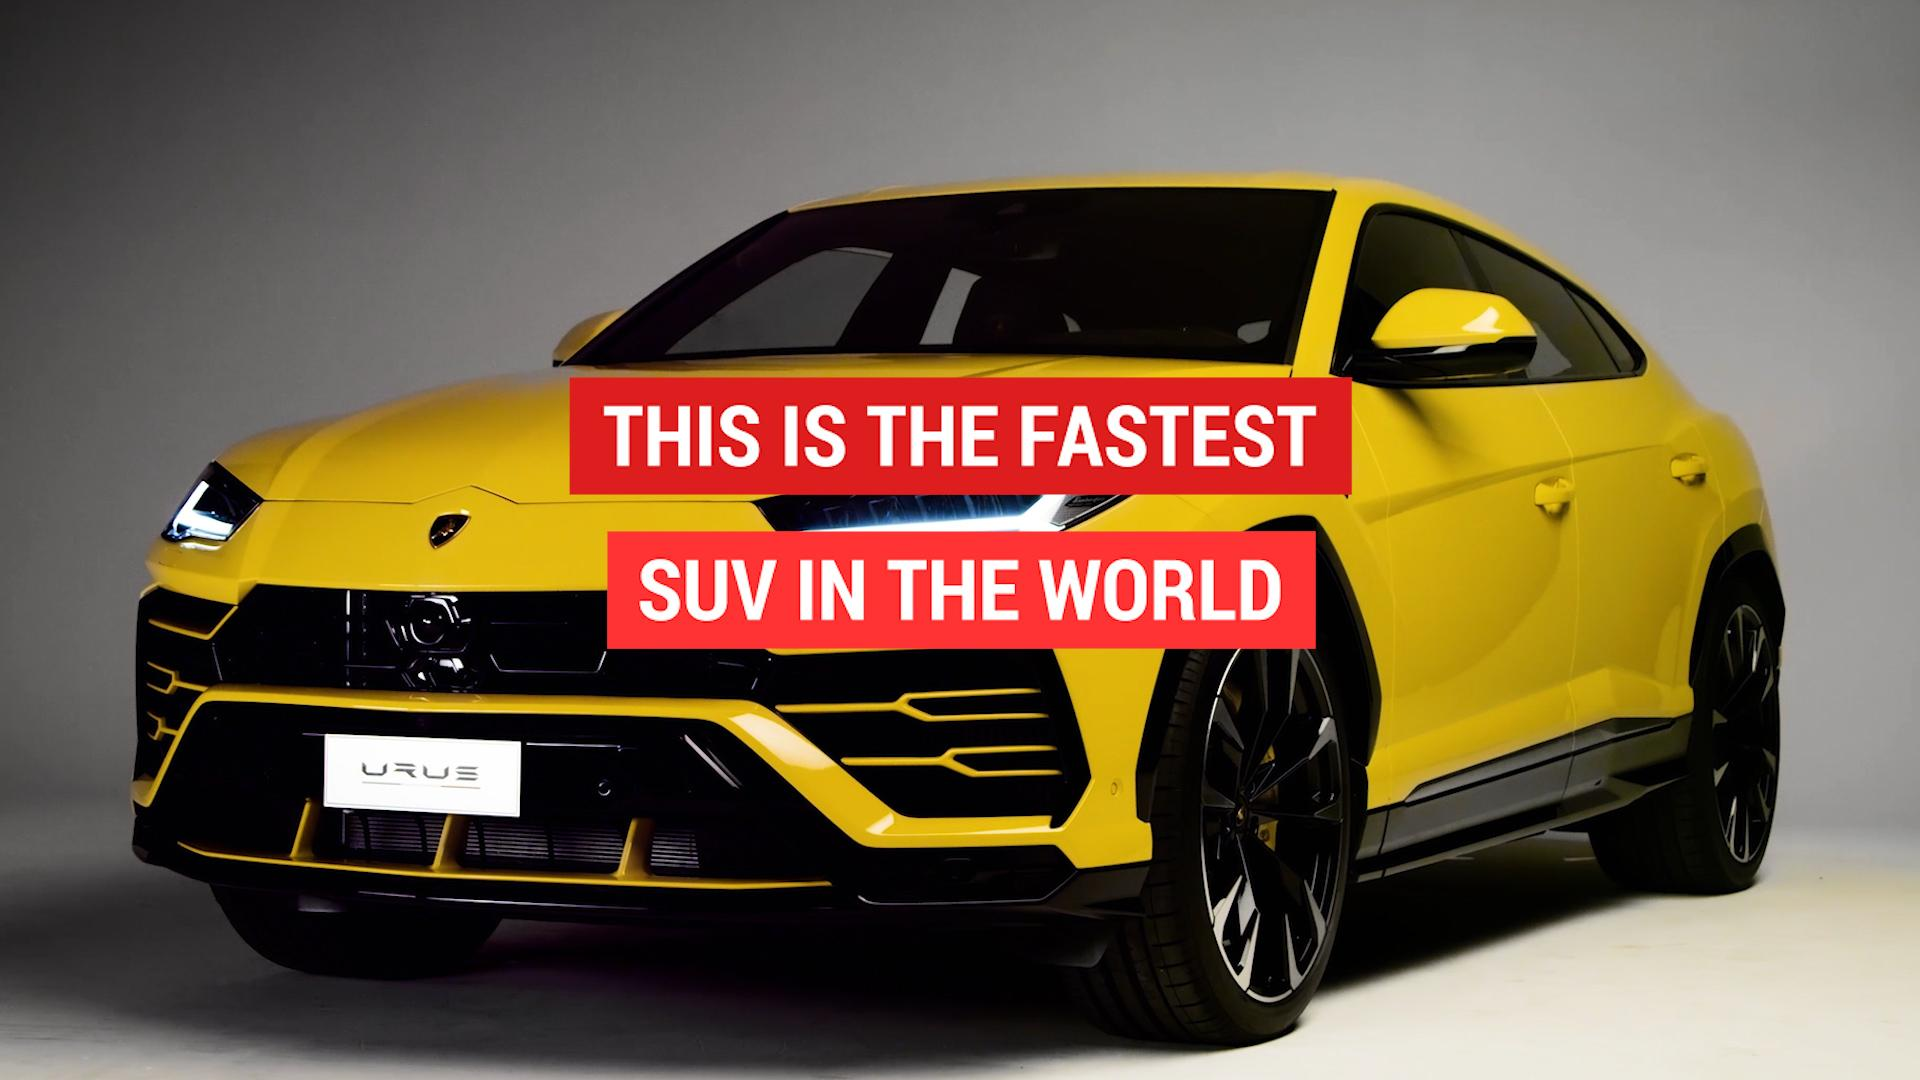 New Lamborghini Urus is the fastest SUV ever